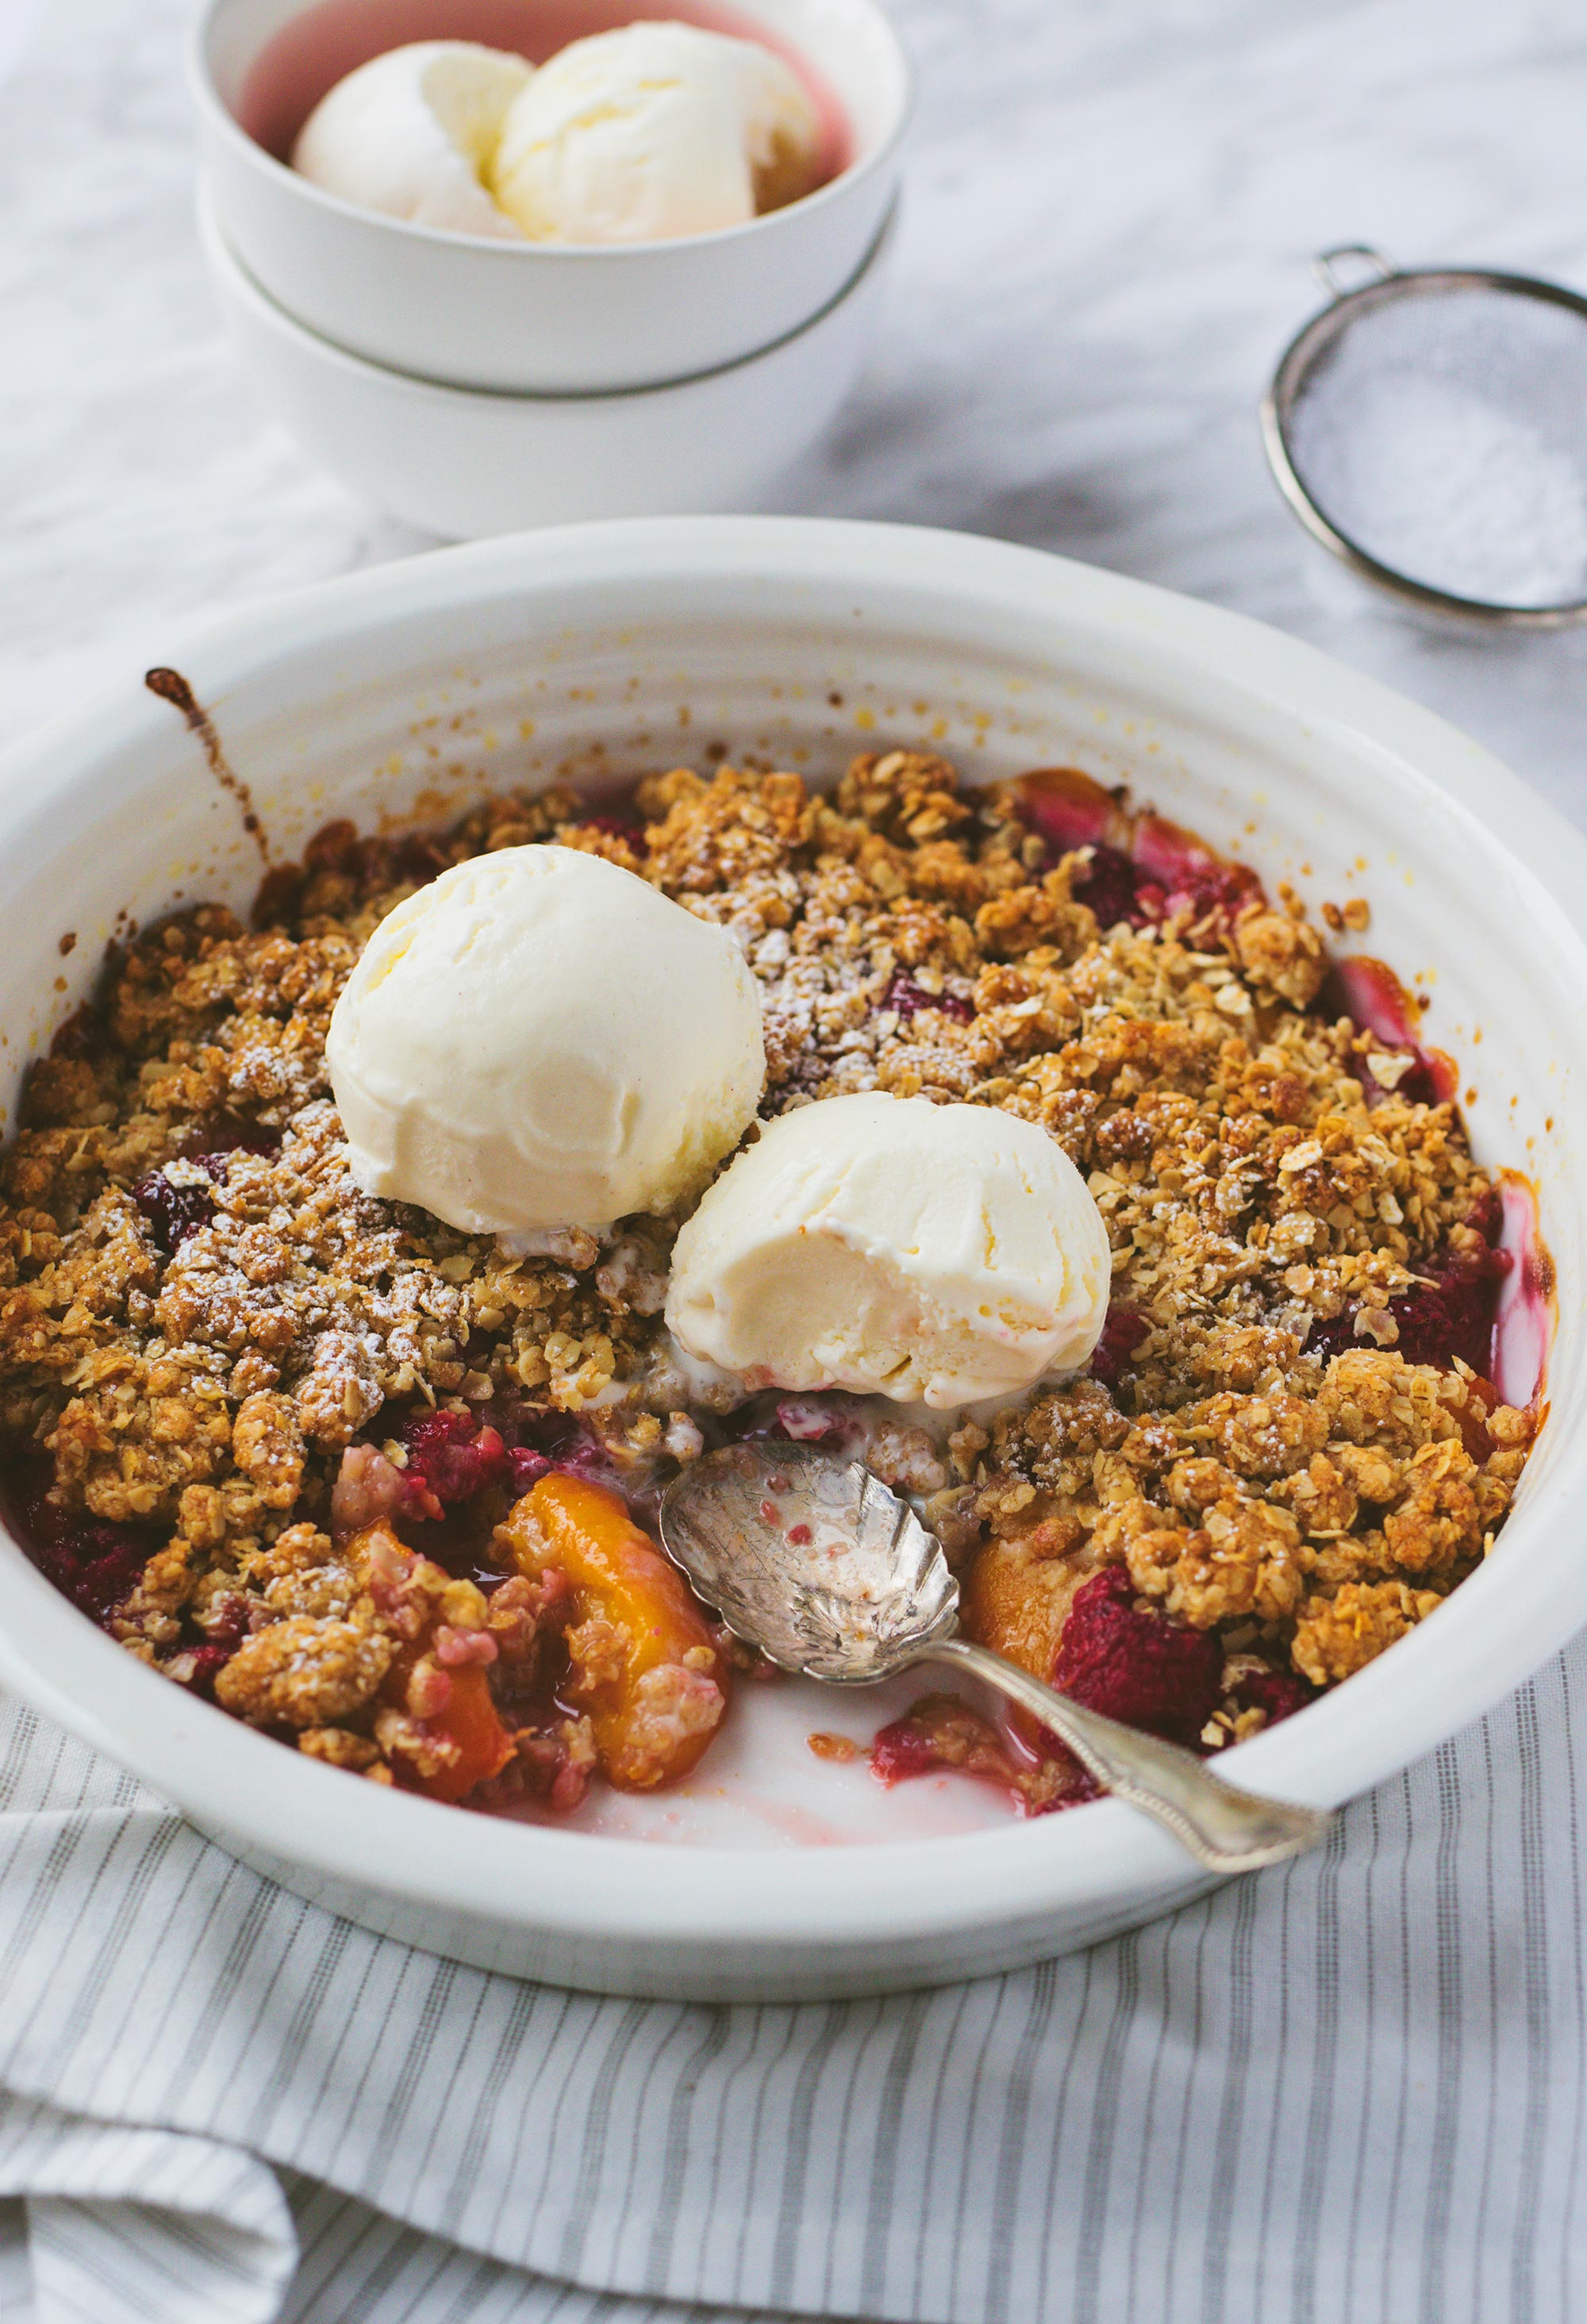 Peach and Raspberry Crisp for Valentine's Day